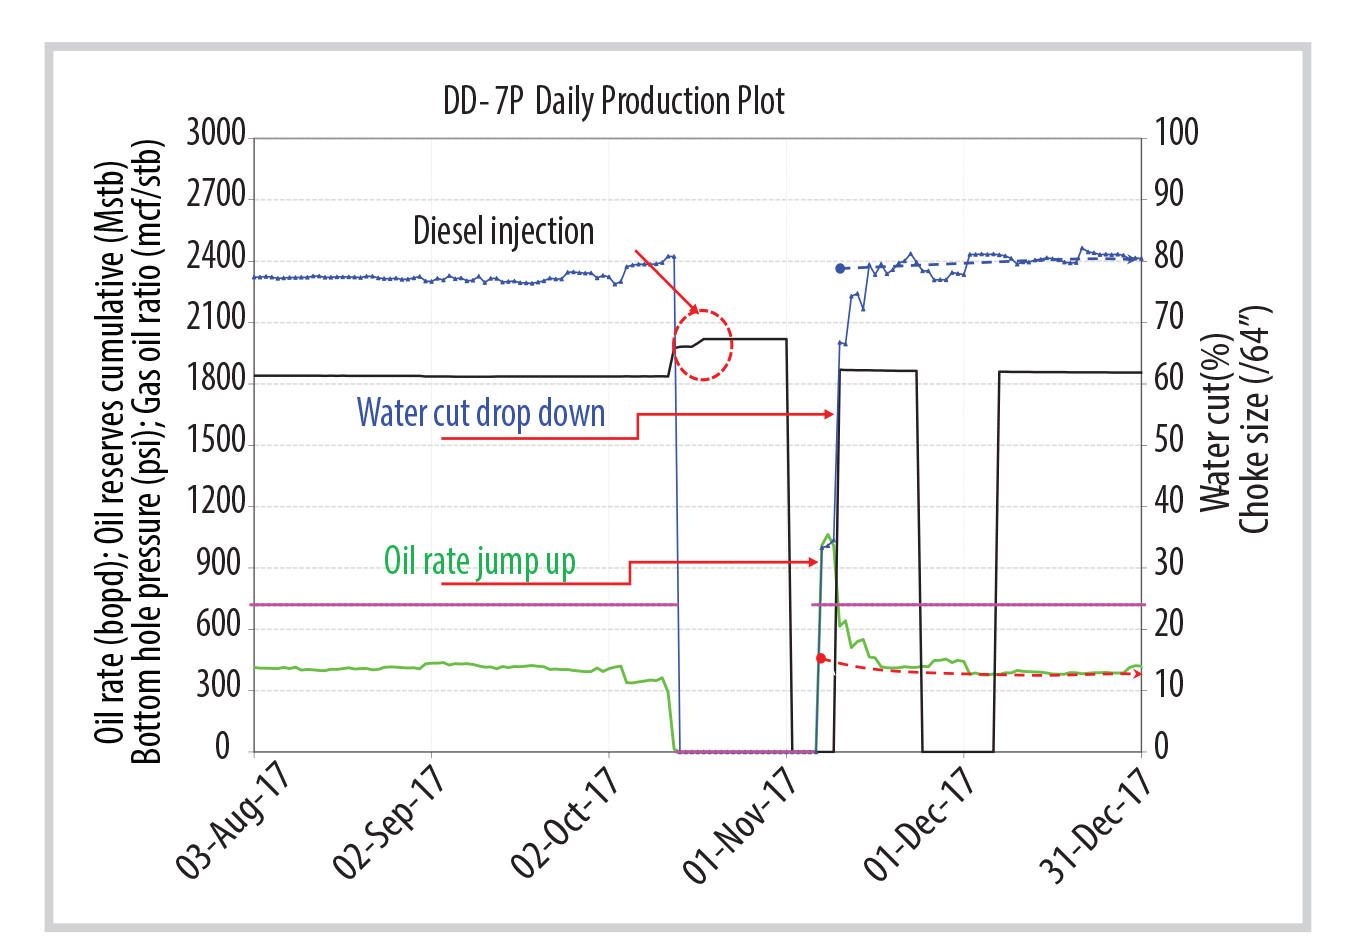 Diesel injection solution applied to Dong Do heavy oil reservoir.